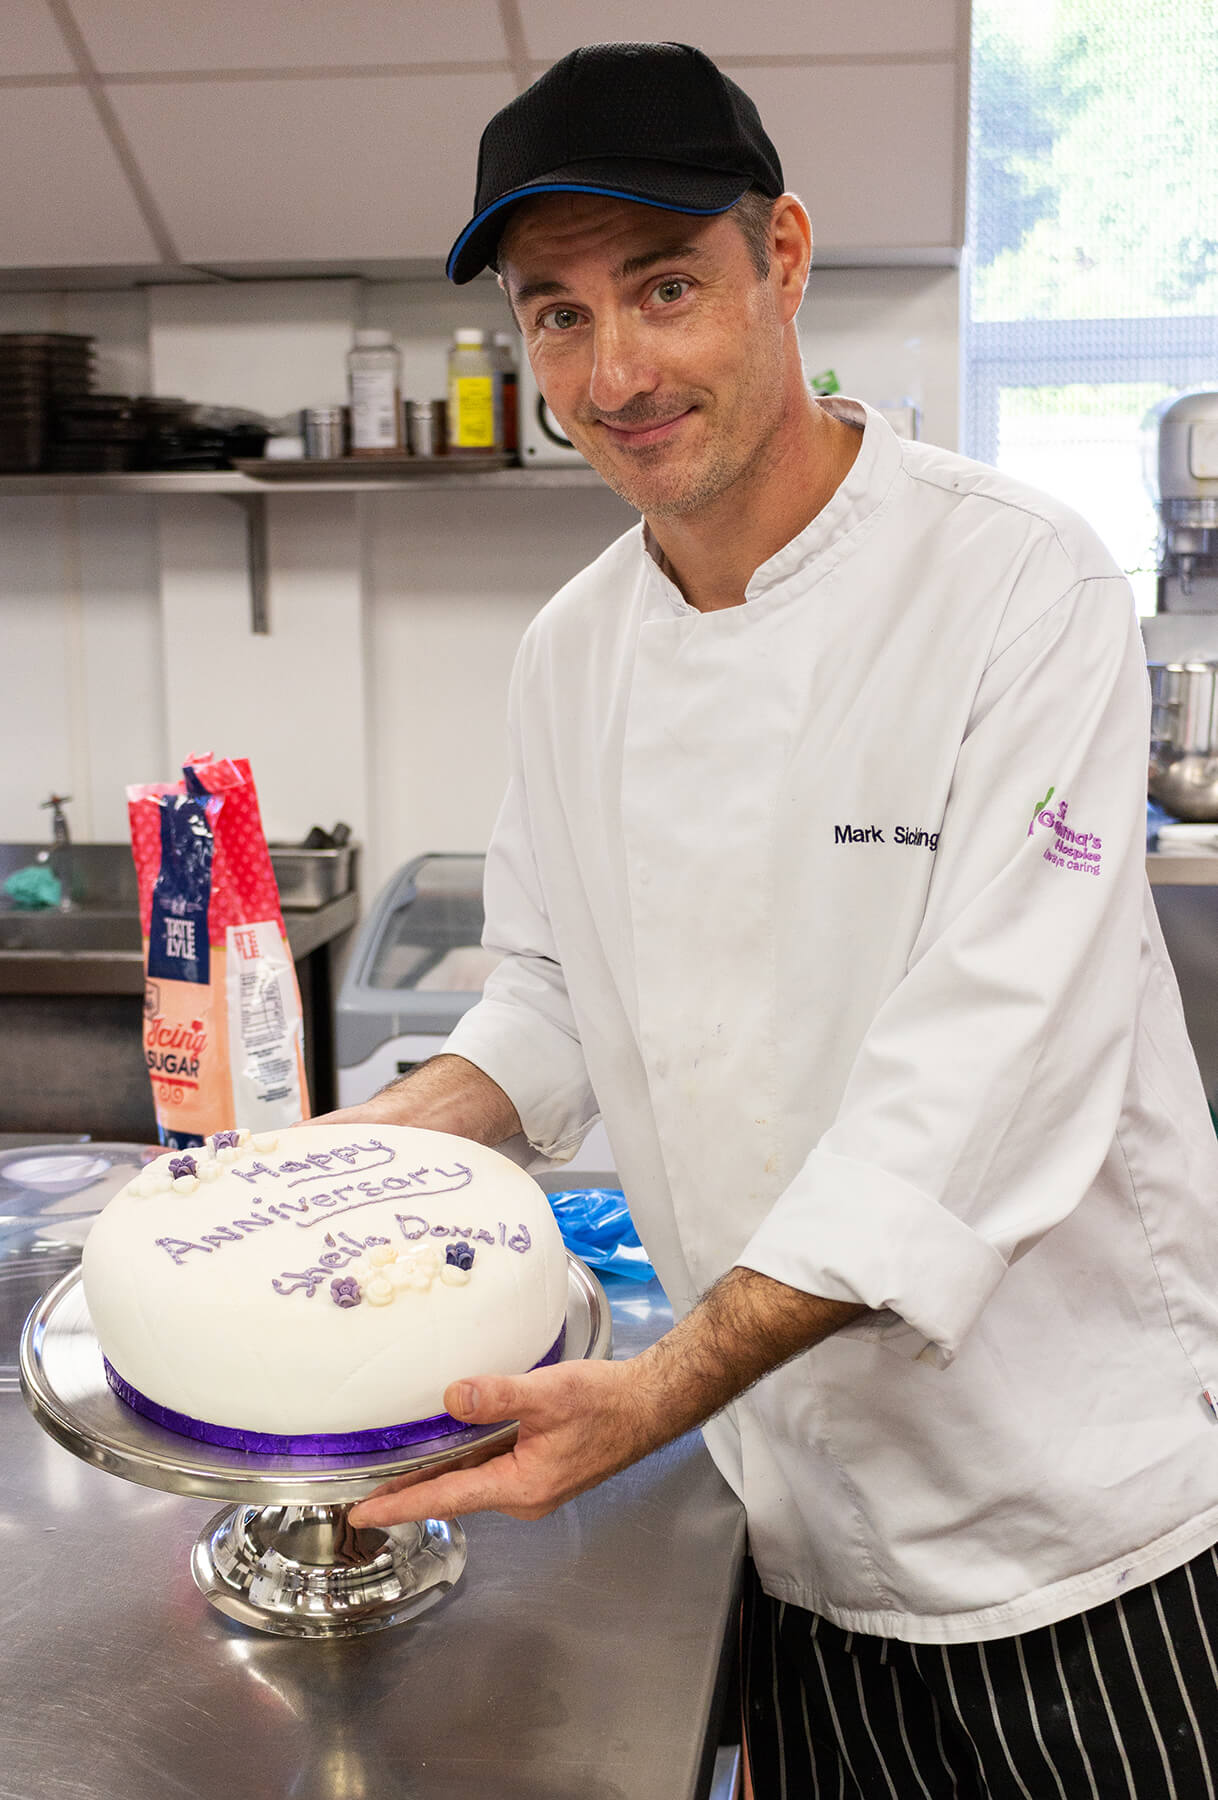 Chef holding cake with 'Happy Anniversary' iced on it.